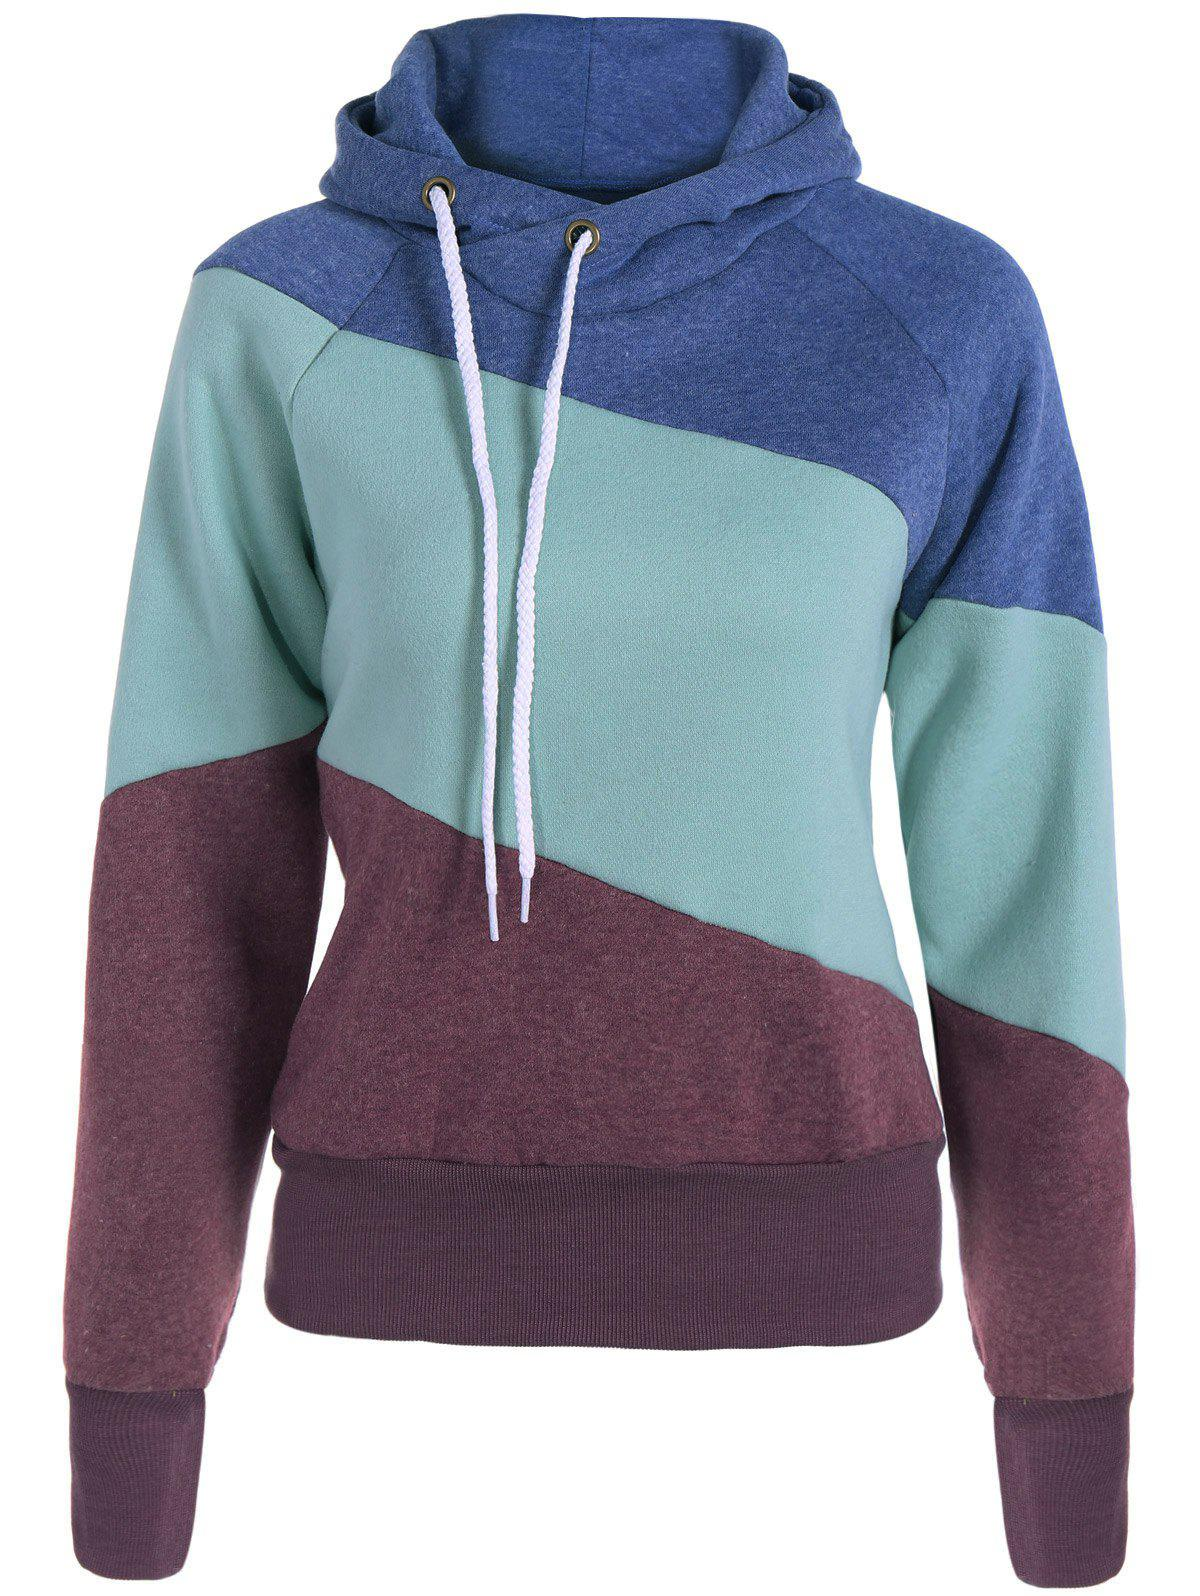 Casual Color Block Long Sleeves Hoodie For WomenWOMEN<br><br>Size: XL; Color: BROWN; Material: Cotton Blend; Shirt Length: Regular; Sleeve Length: Full; Style: Casual; Pattern Style: Patchwork; Weight: 0.520kg; Package Contents: 1 x Hoodie;